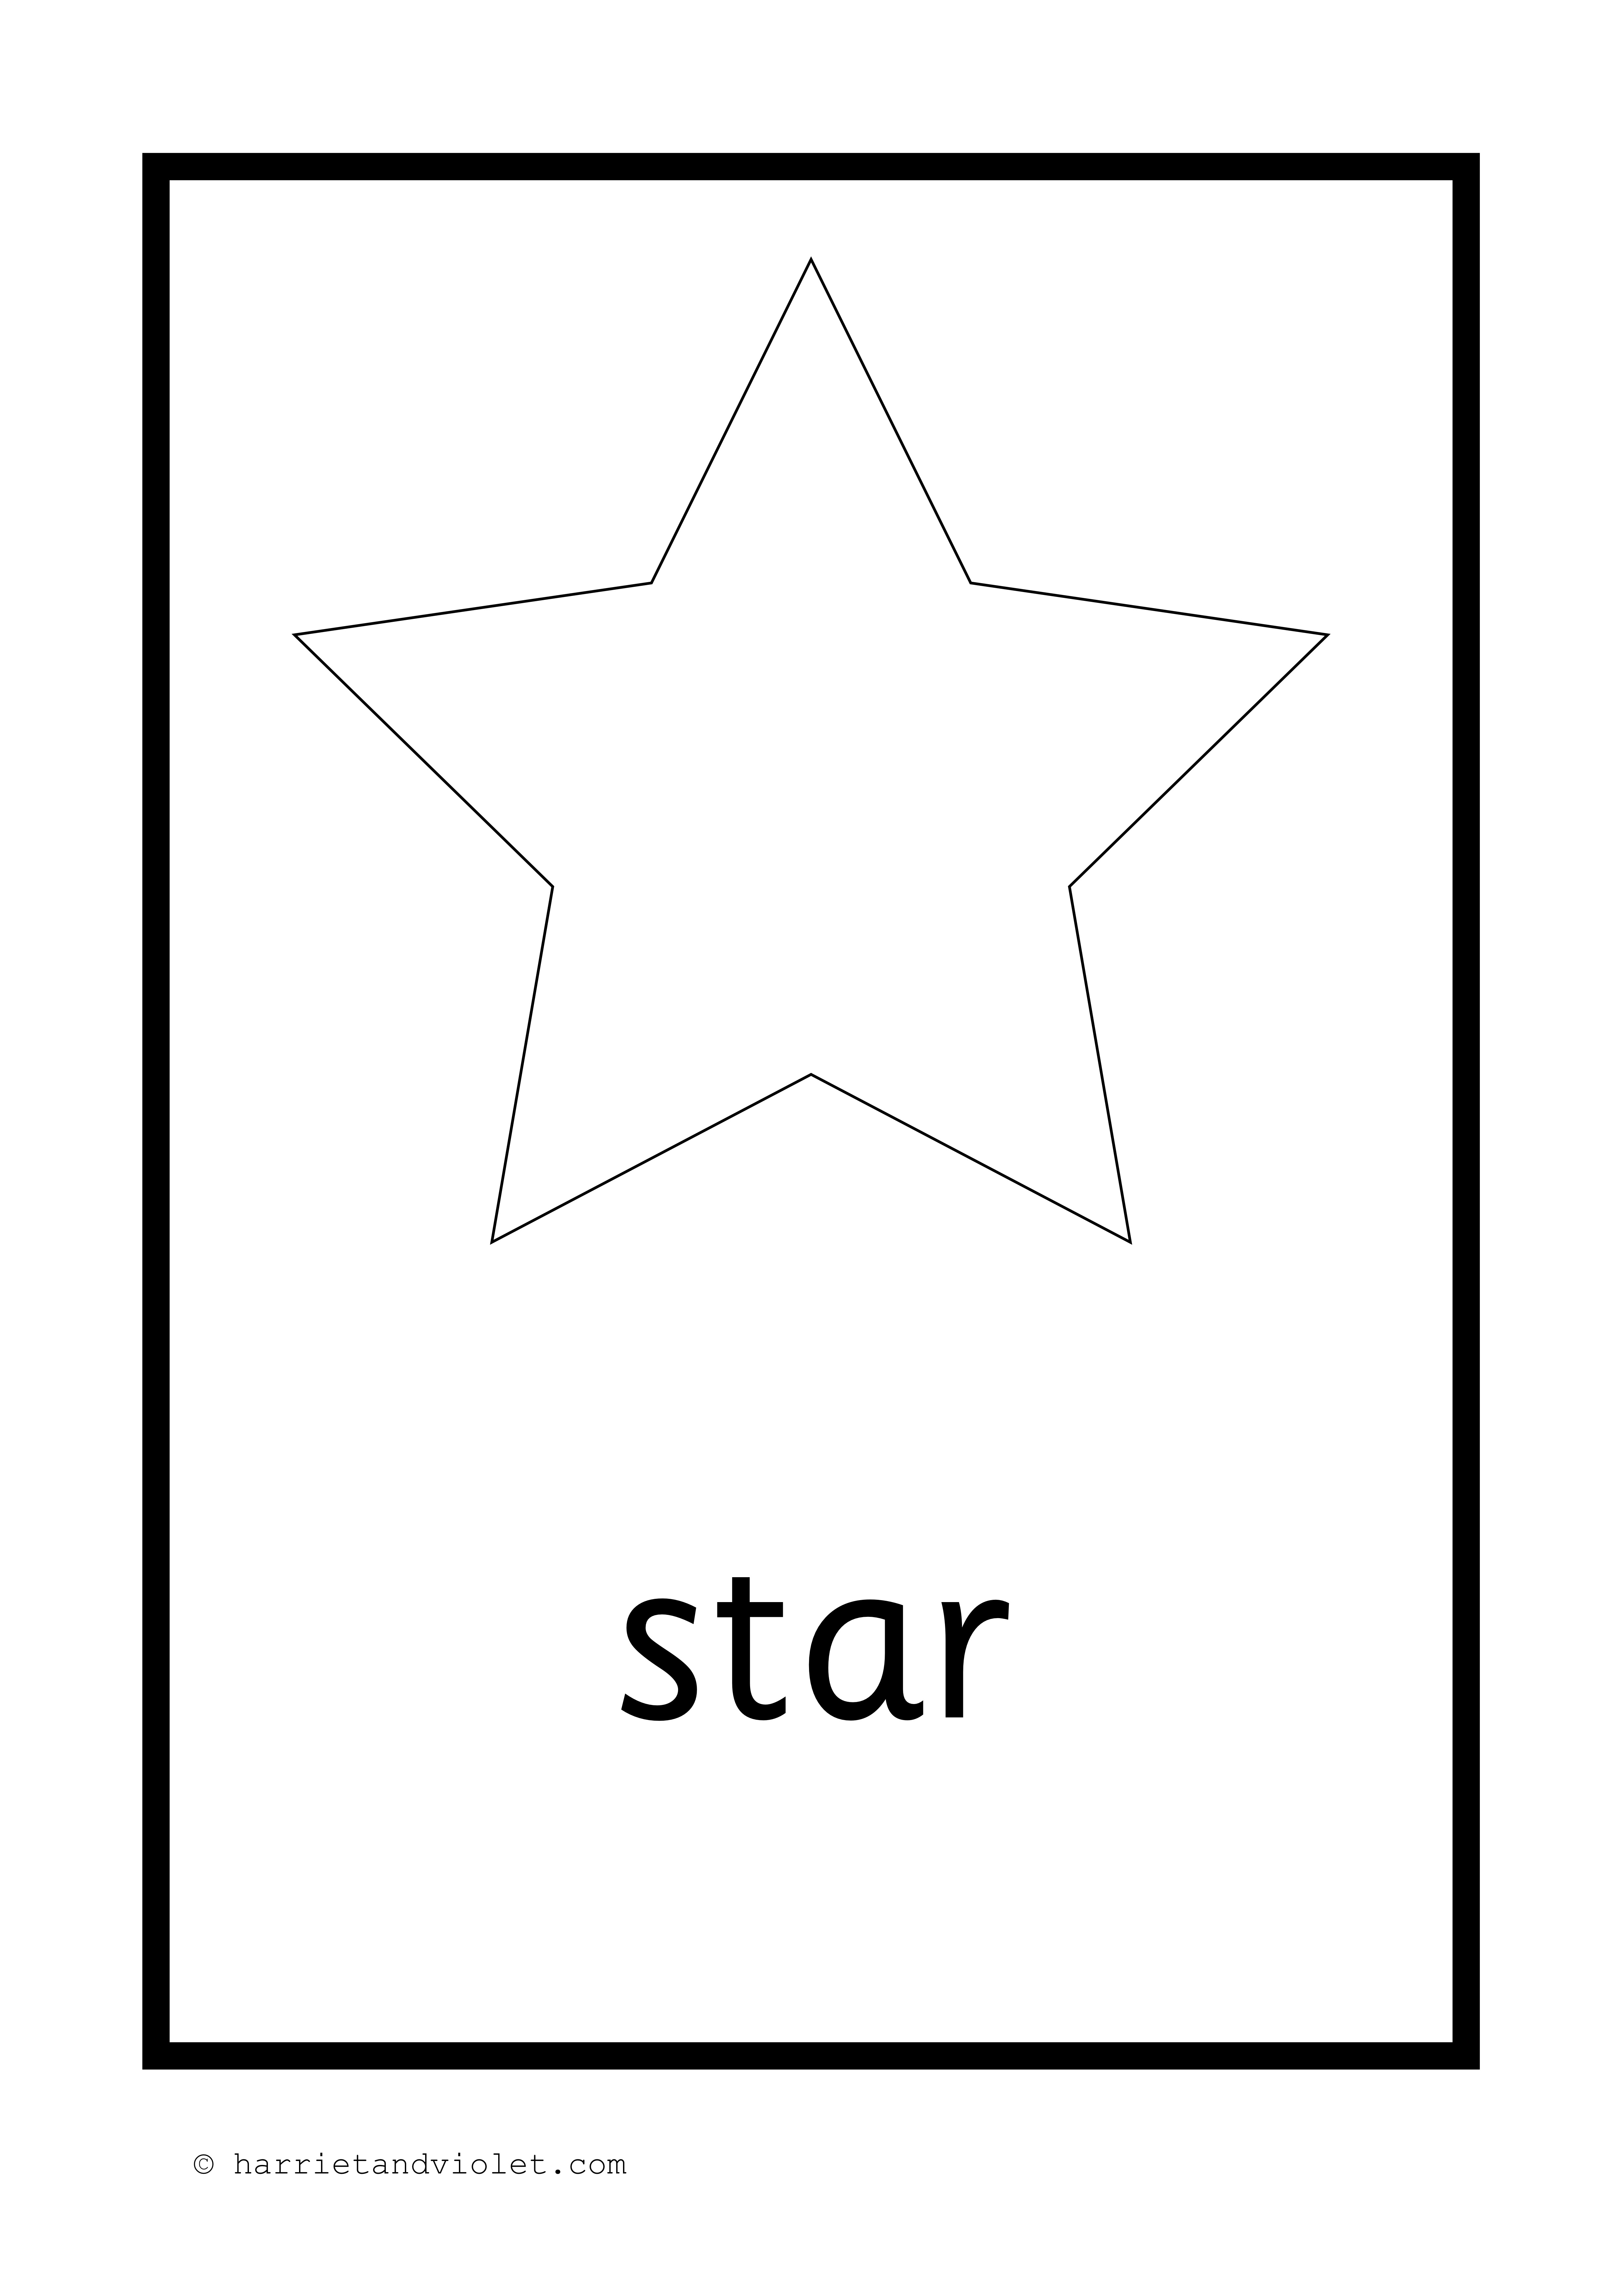 2D Shape Posters or Flash Cards in Black & White - Free ...